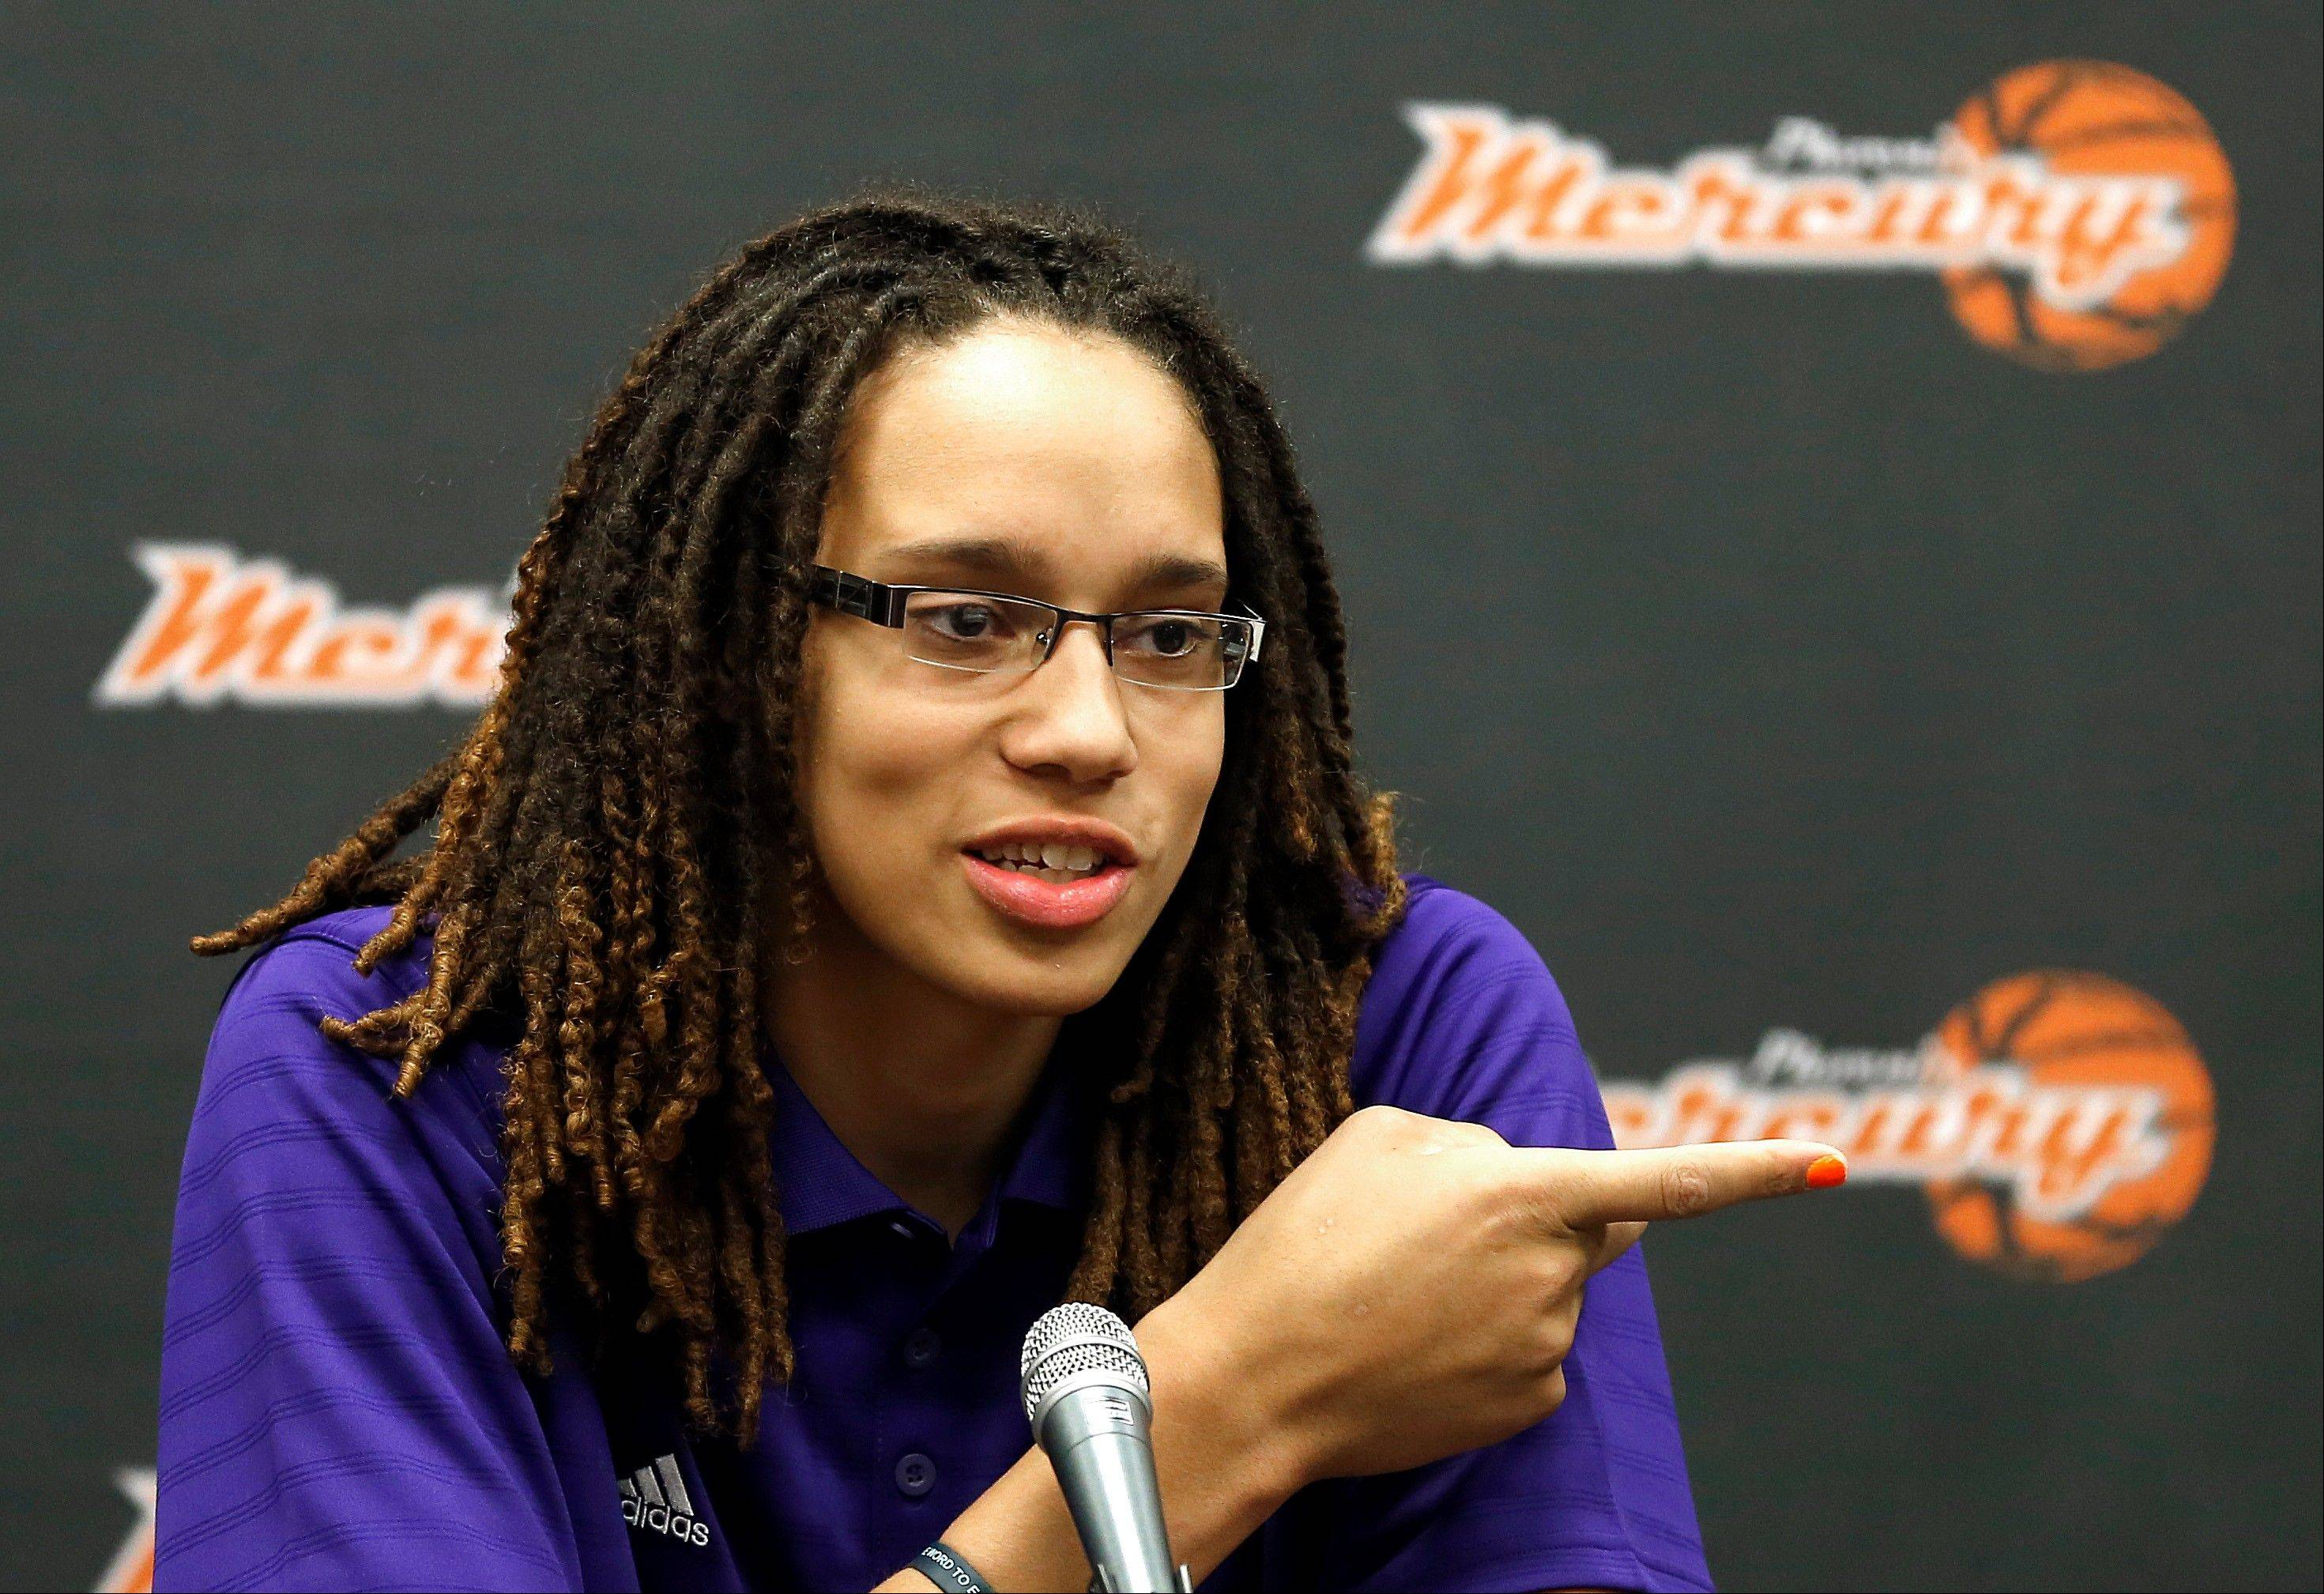 Brittney Griner, the No. 1 overall pick the WNBA draft, will be showcasing her talent this summer with the Phoenix Mercury.